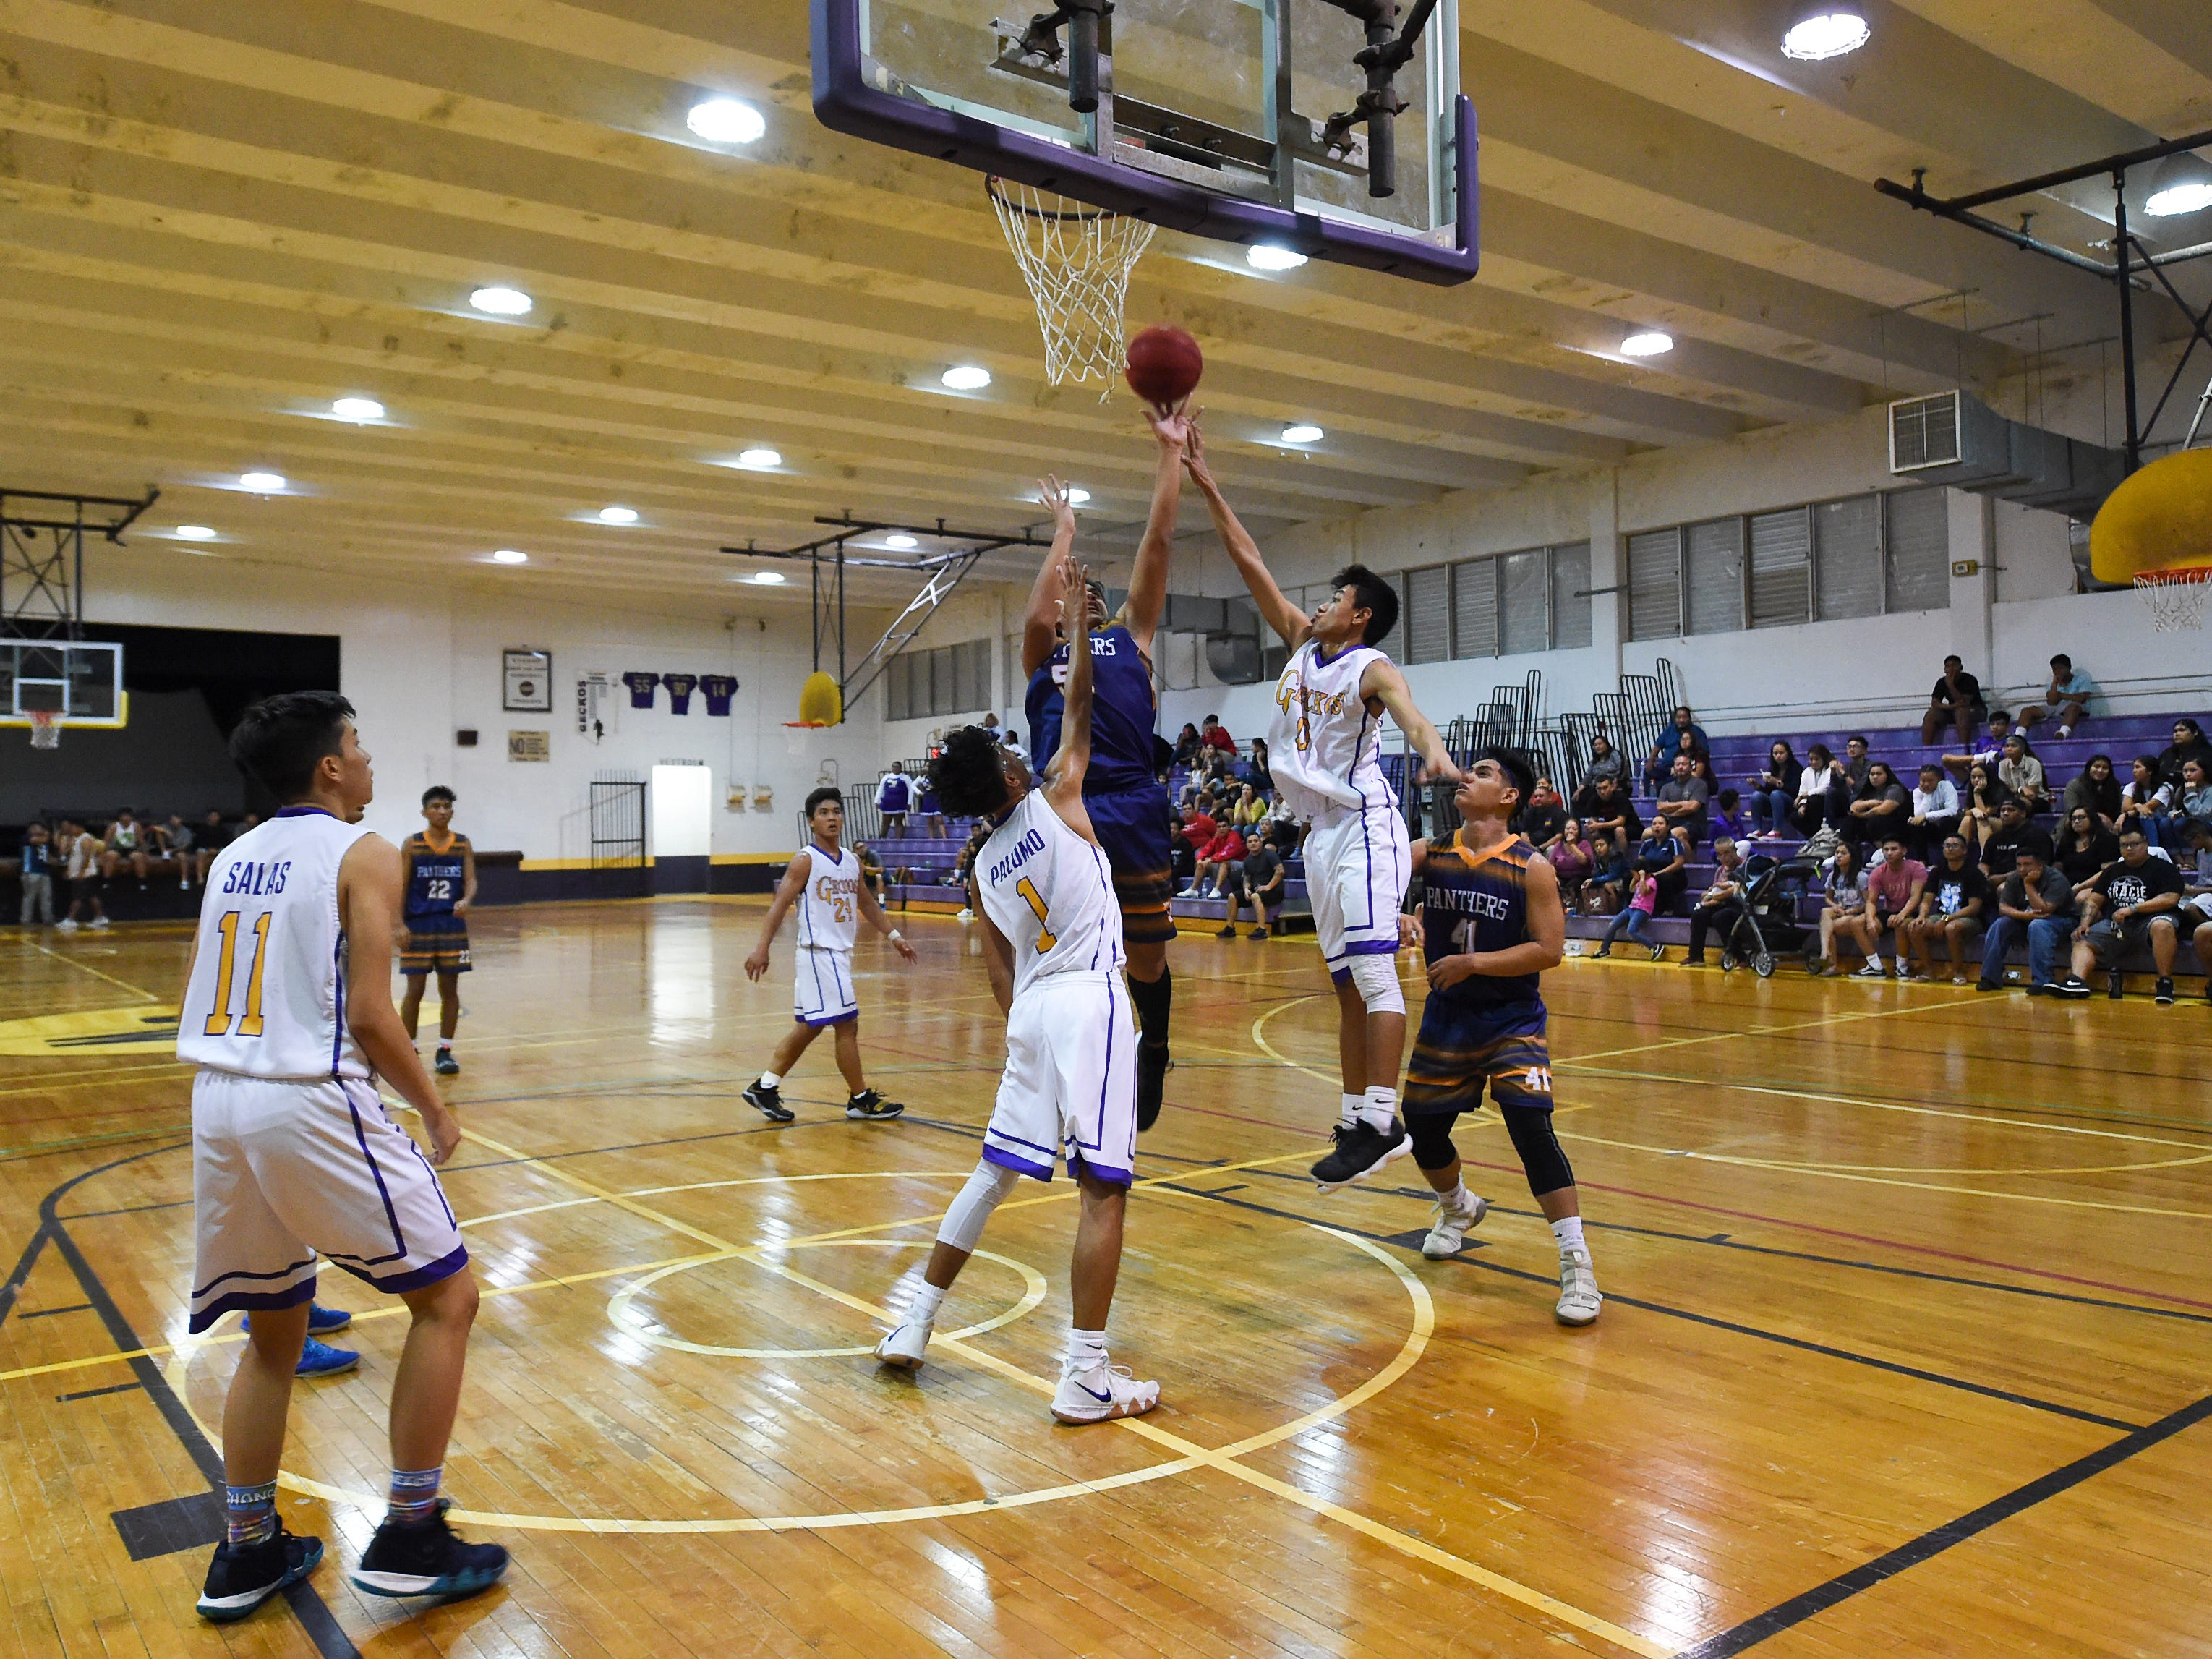 The George Washington Geckos and the Guam High Panthers hit the hardwood for an Independent Interscholastic Athletic Association of Guam Boys' Basketball game at the GW High School gym on Feb. 2, 2019.